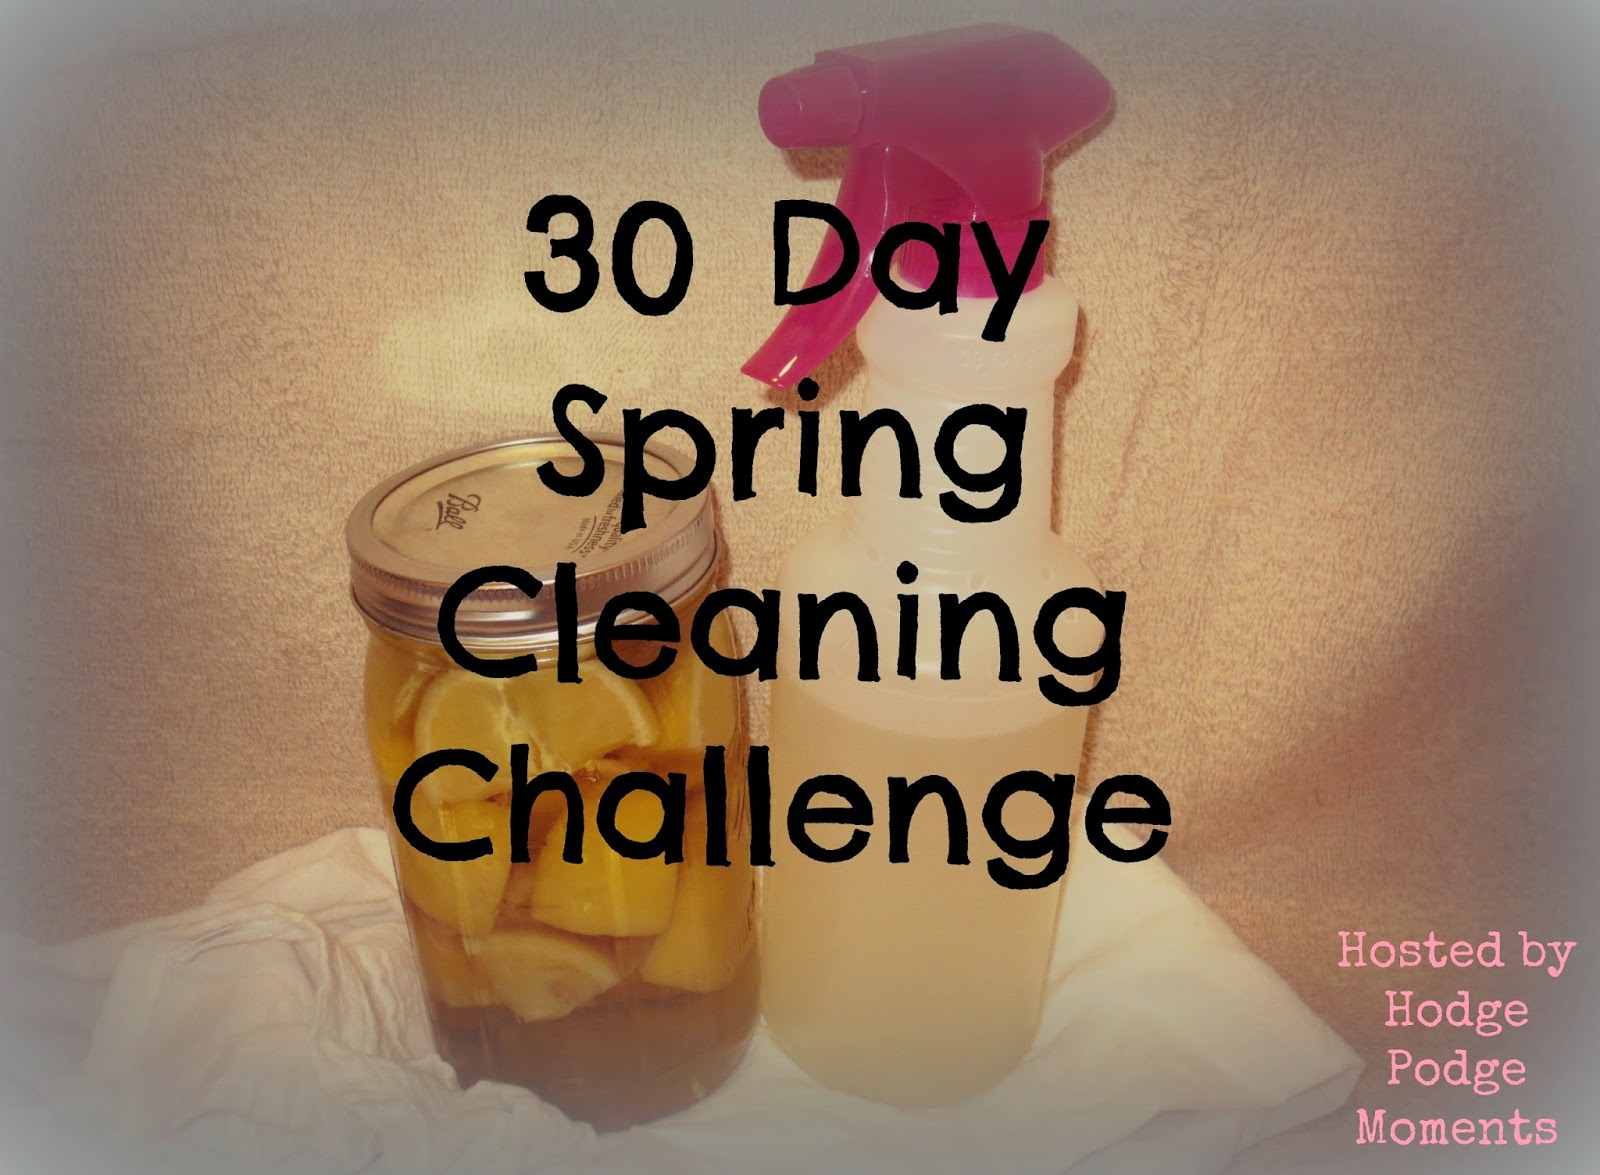 Join Me for Spring Cleaning!